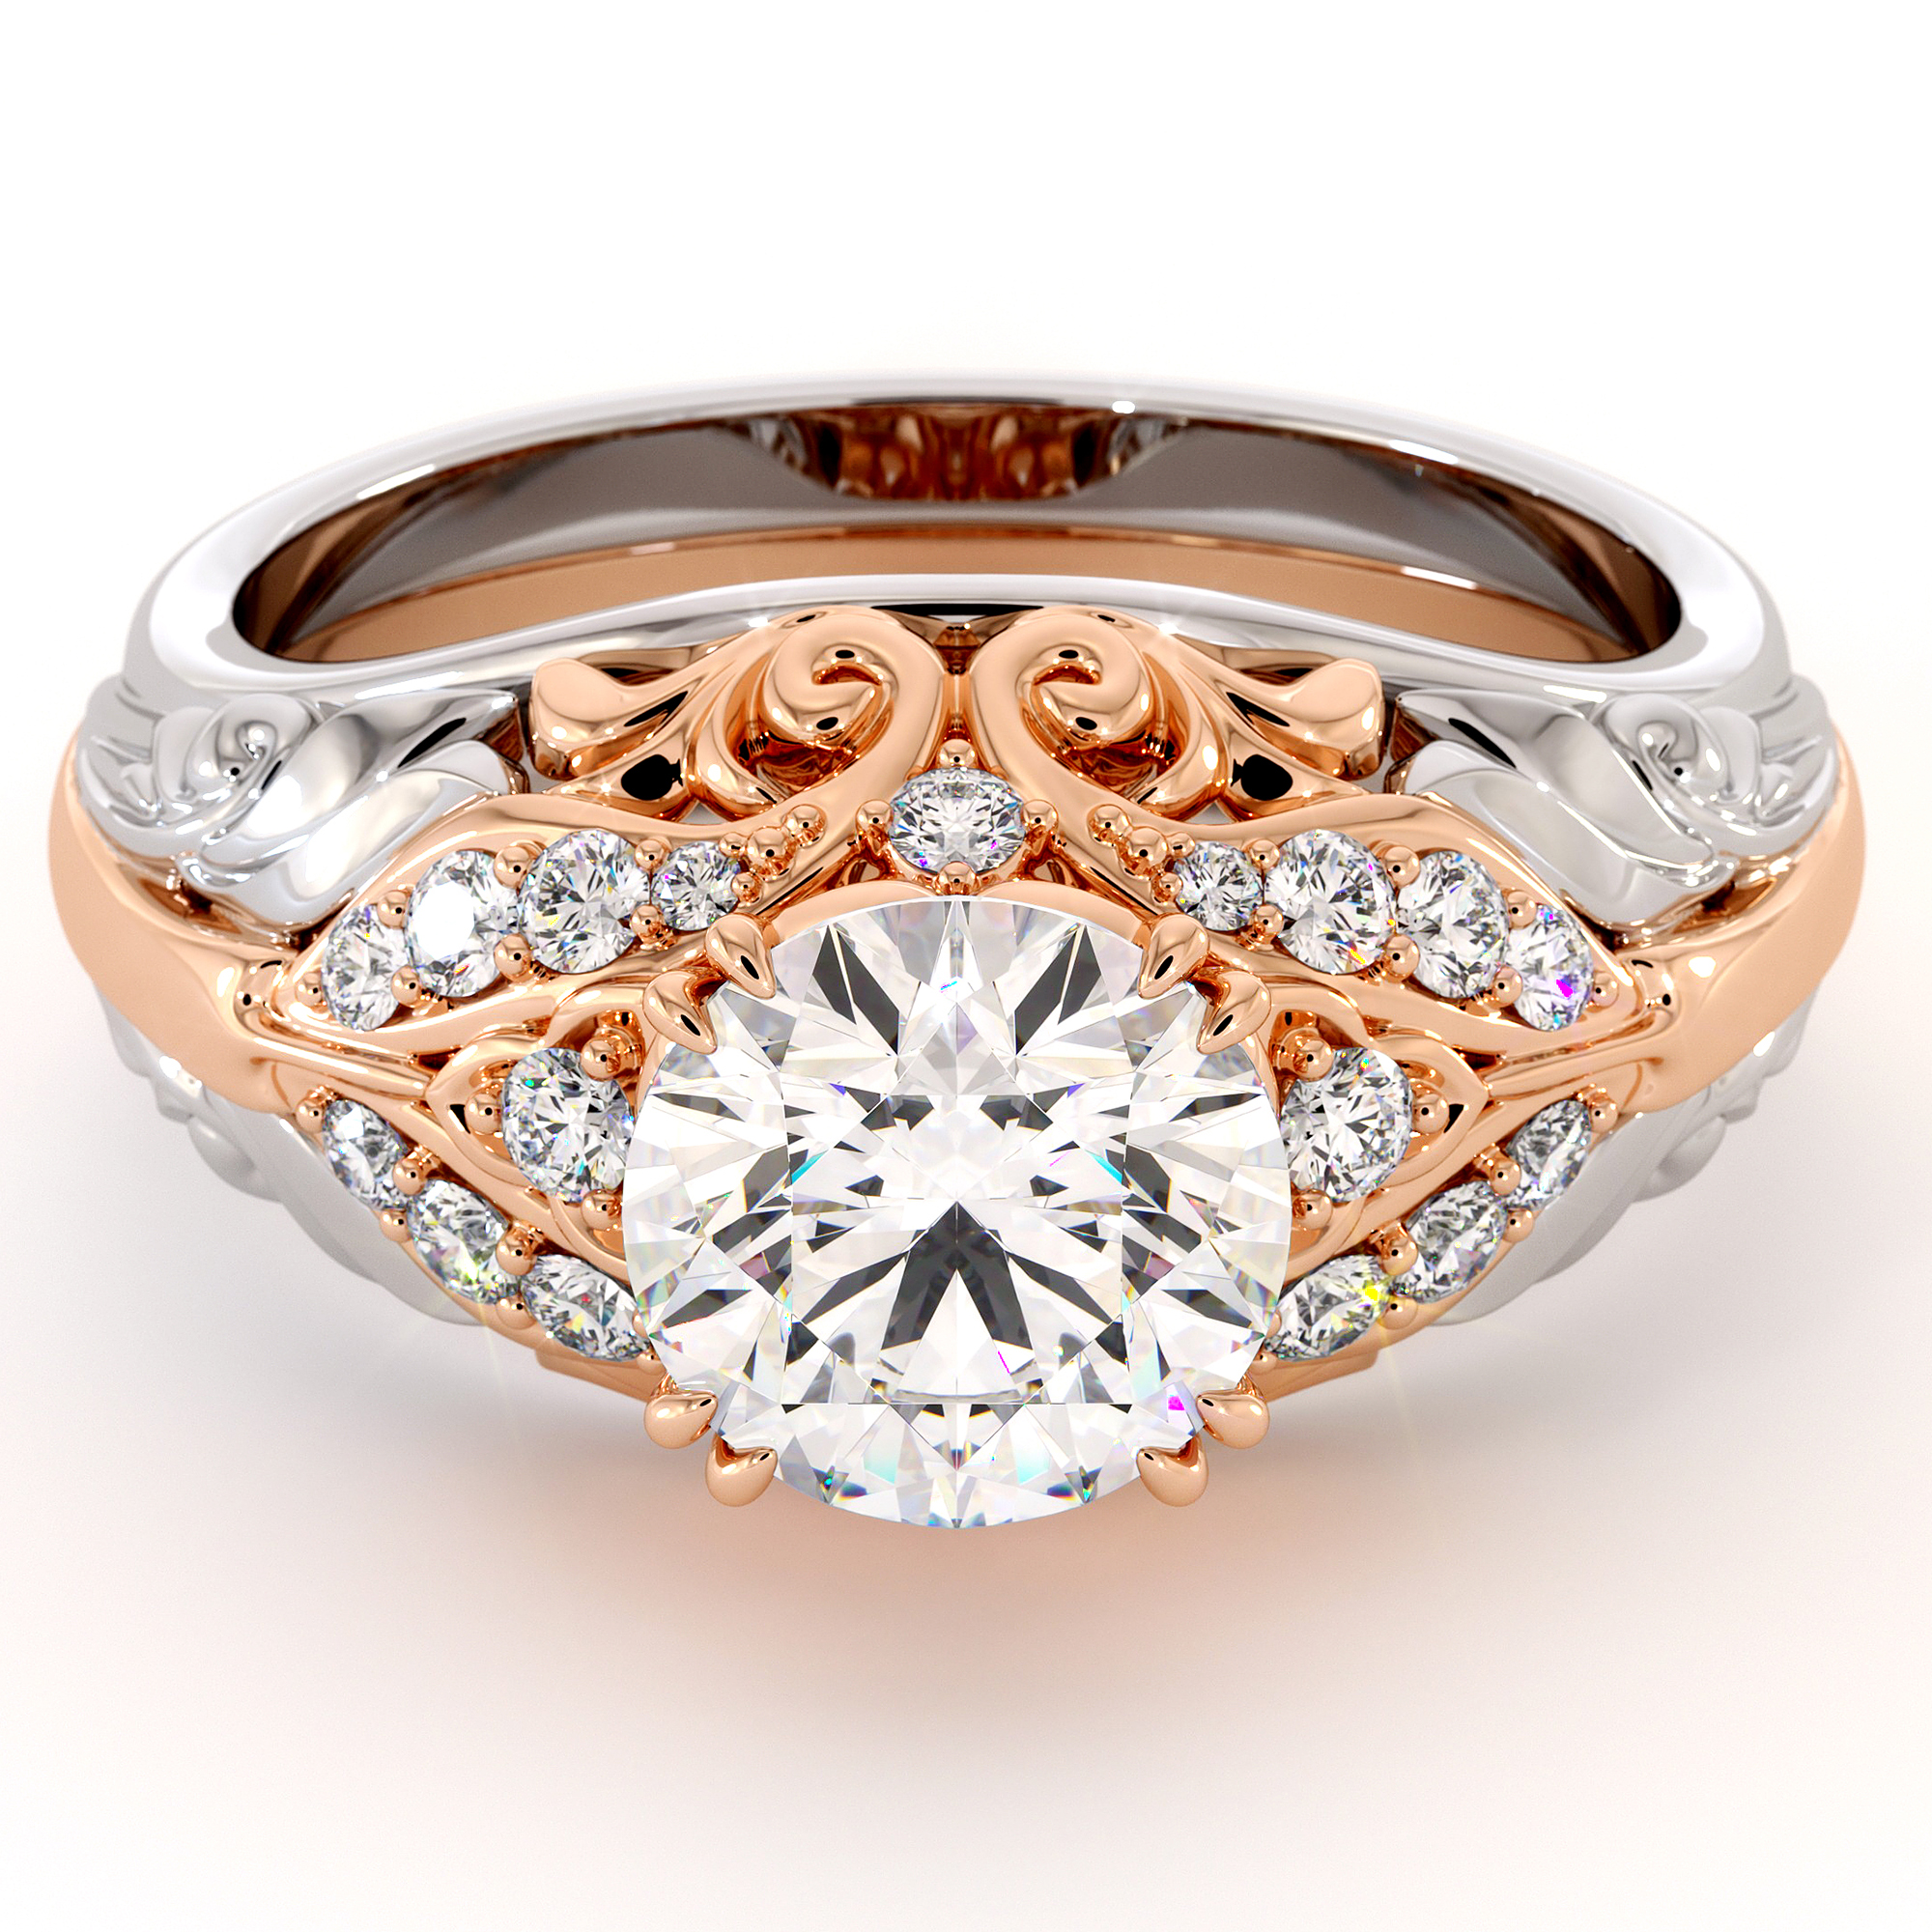 Unique Regal Filigree Engagement Ring Two Tone Gold D-F Moissanite Proposal Ring